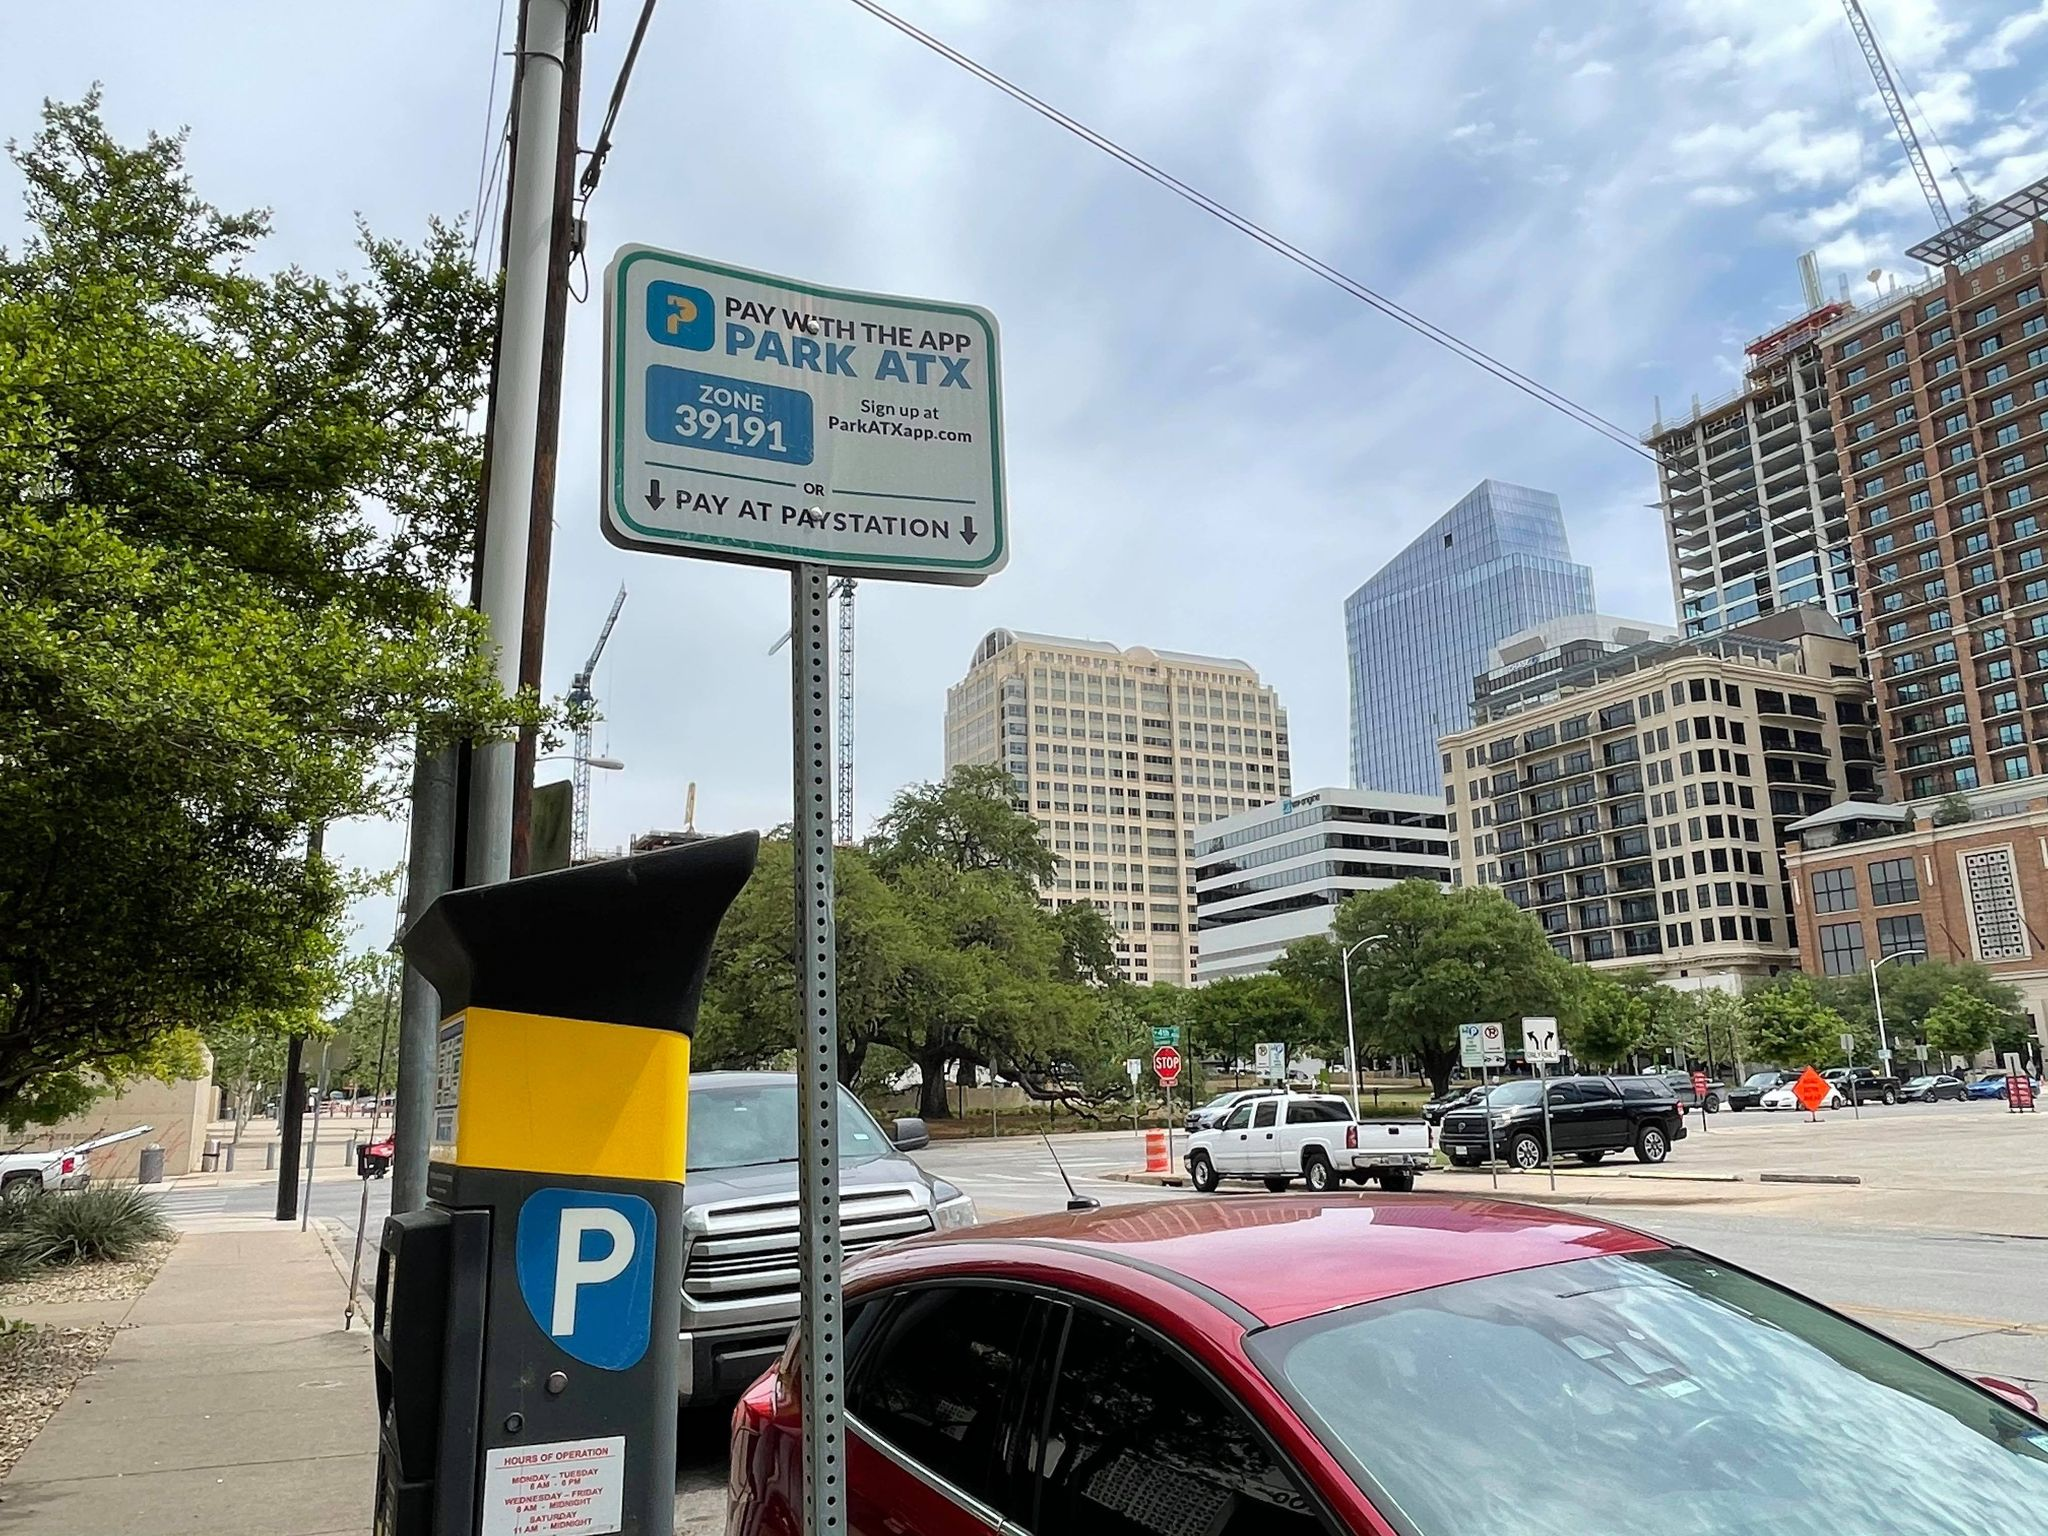 A parking meter and zone sign in downtown Austin (KXAN Photo/Jaclyn Ramkissoon)